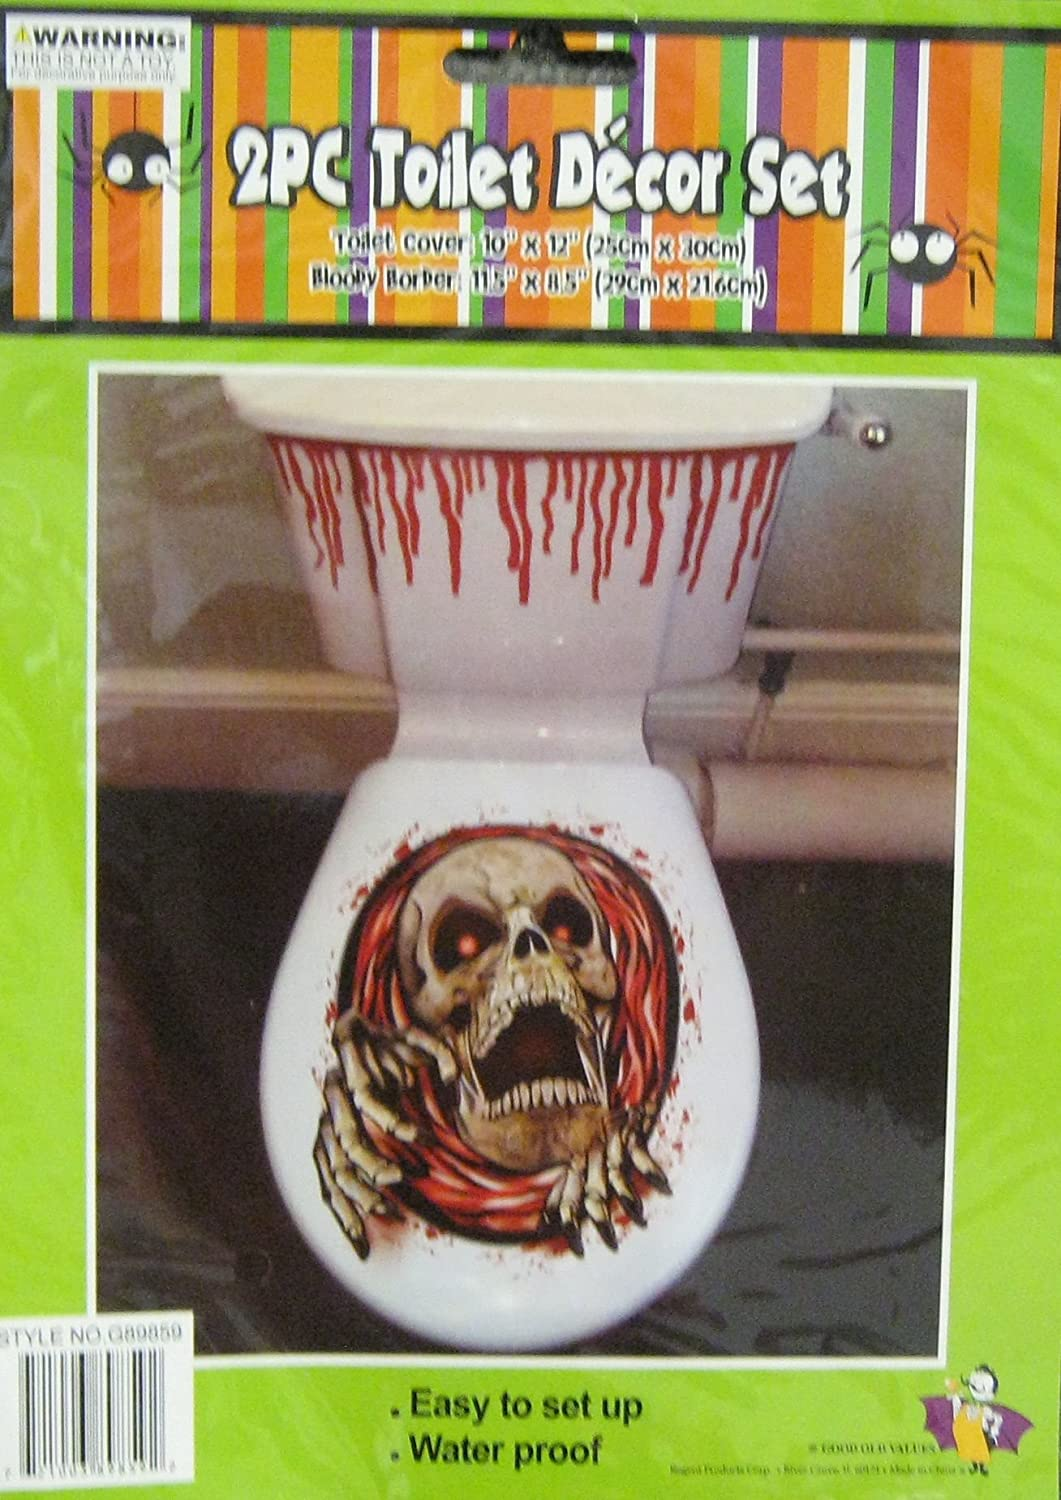 Blood Bath Toilet Set